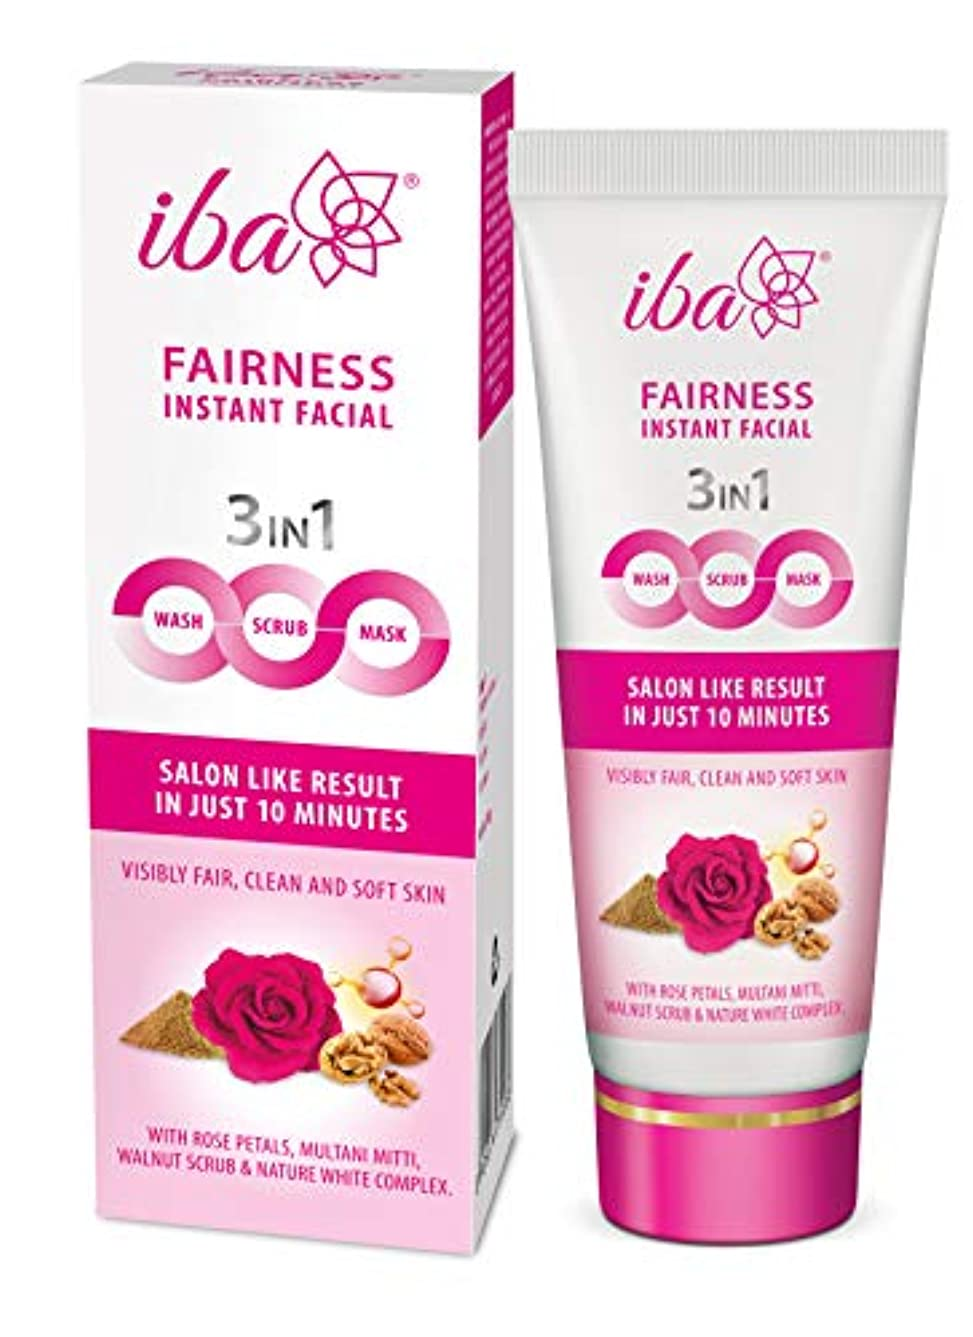 快いフォーカス裏切りIba Halal Care Fairness Instant Facial (3in1 Mask Scrub Facial Wash), 100g